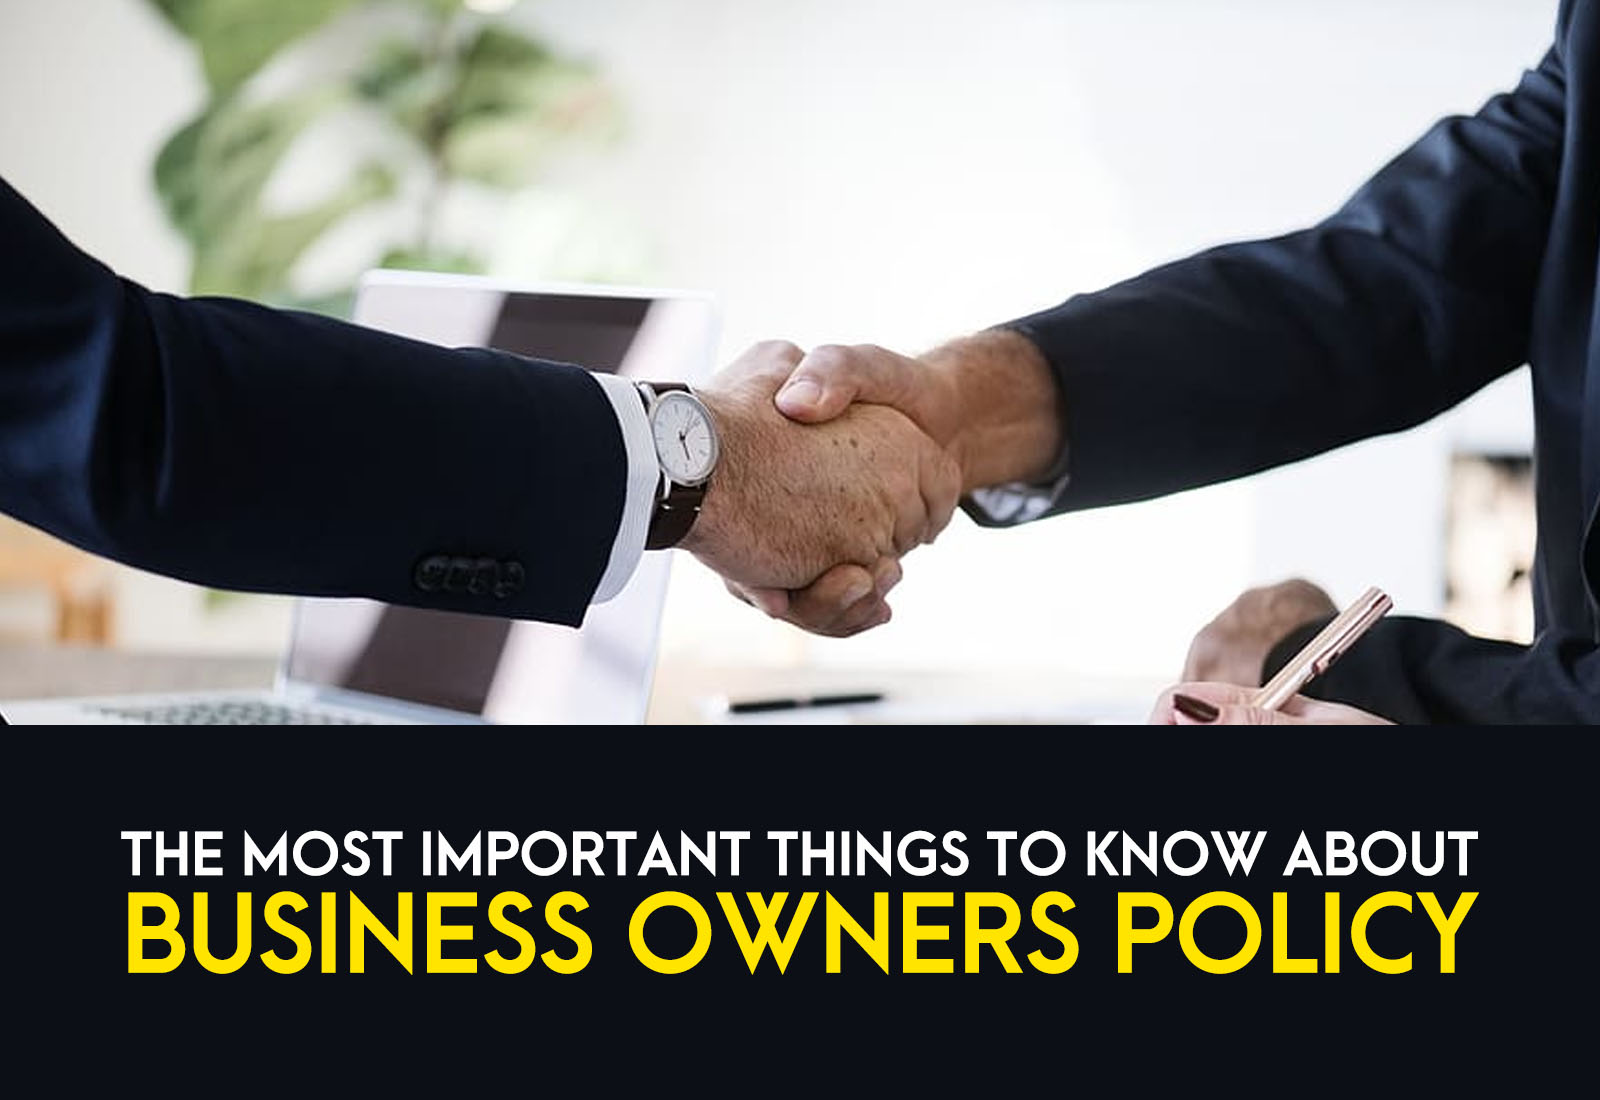 The Most Important To Know About Business Owners Policy